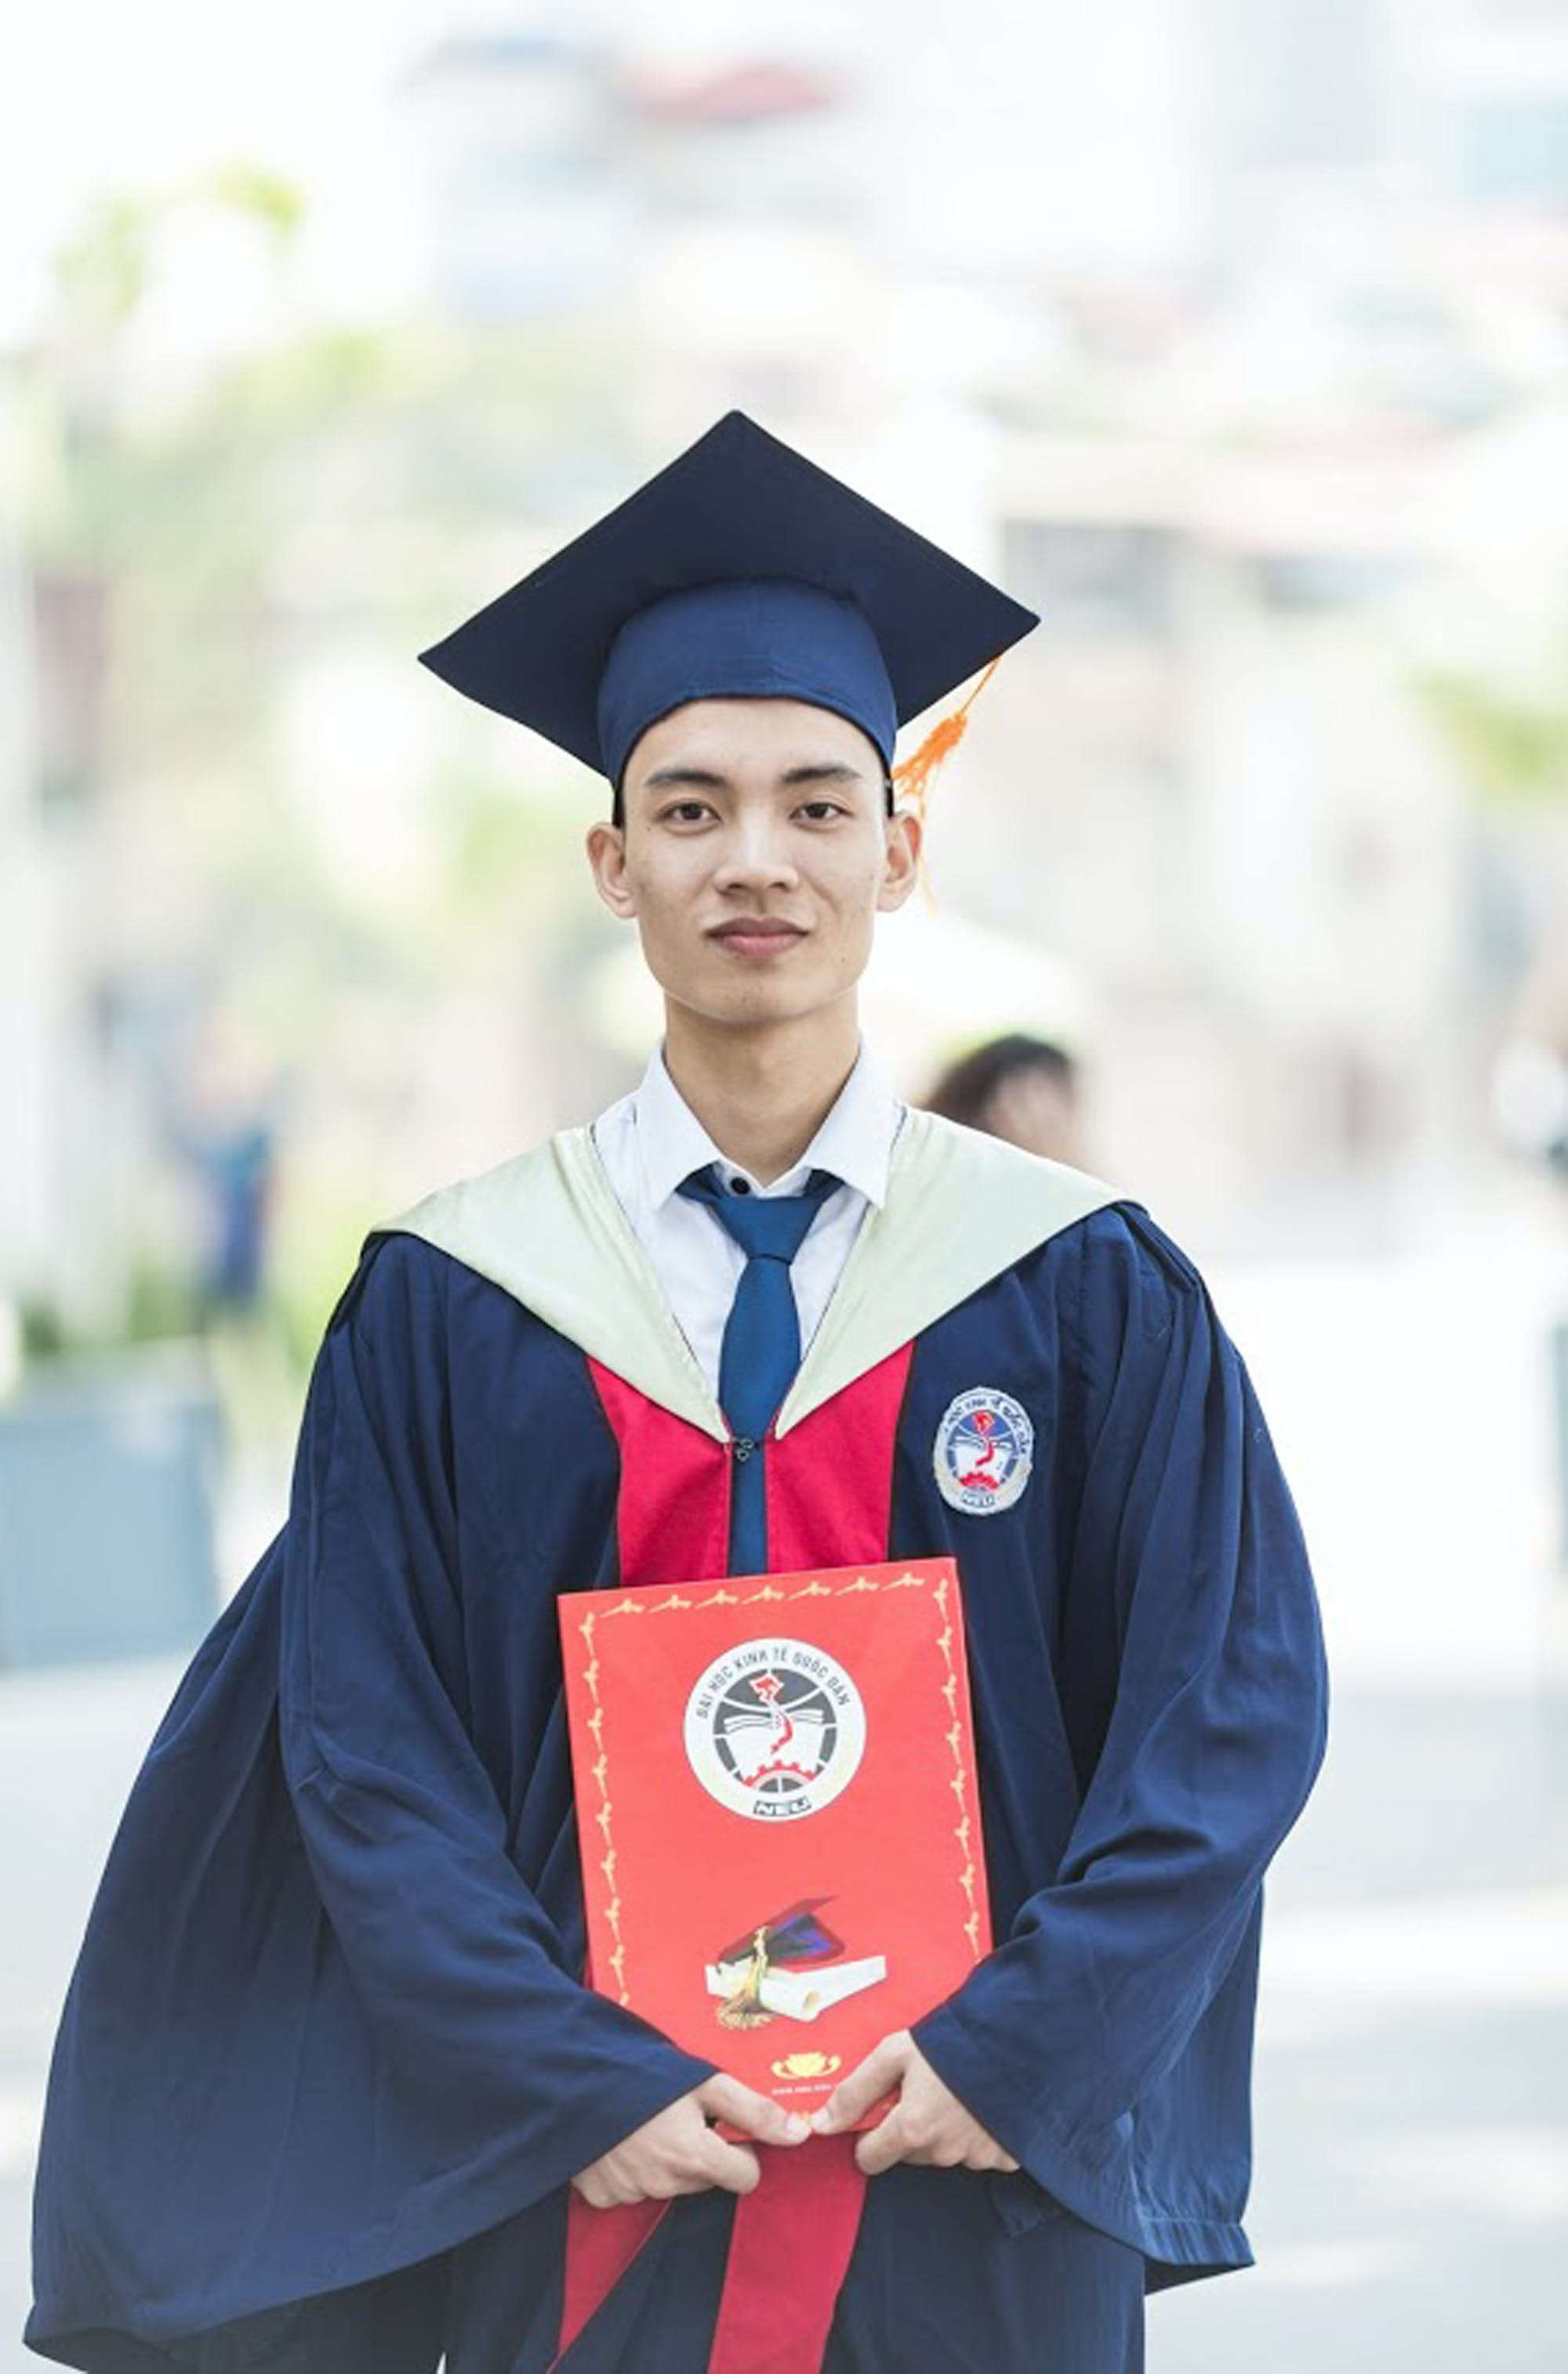 Man In Toga Holding Diploma